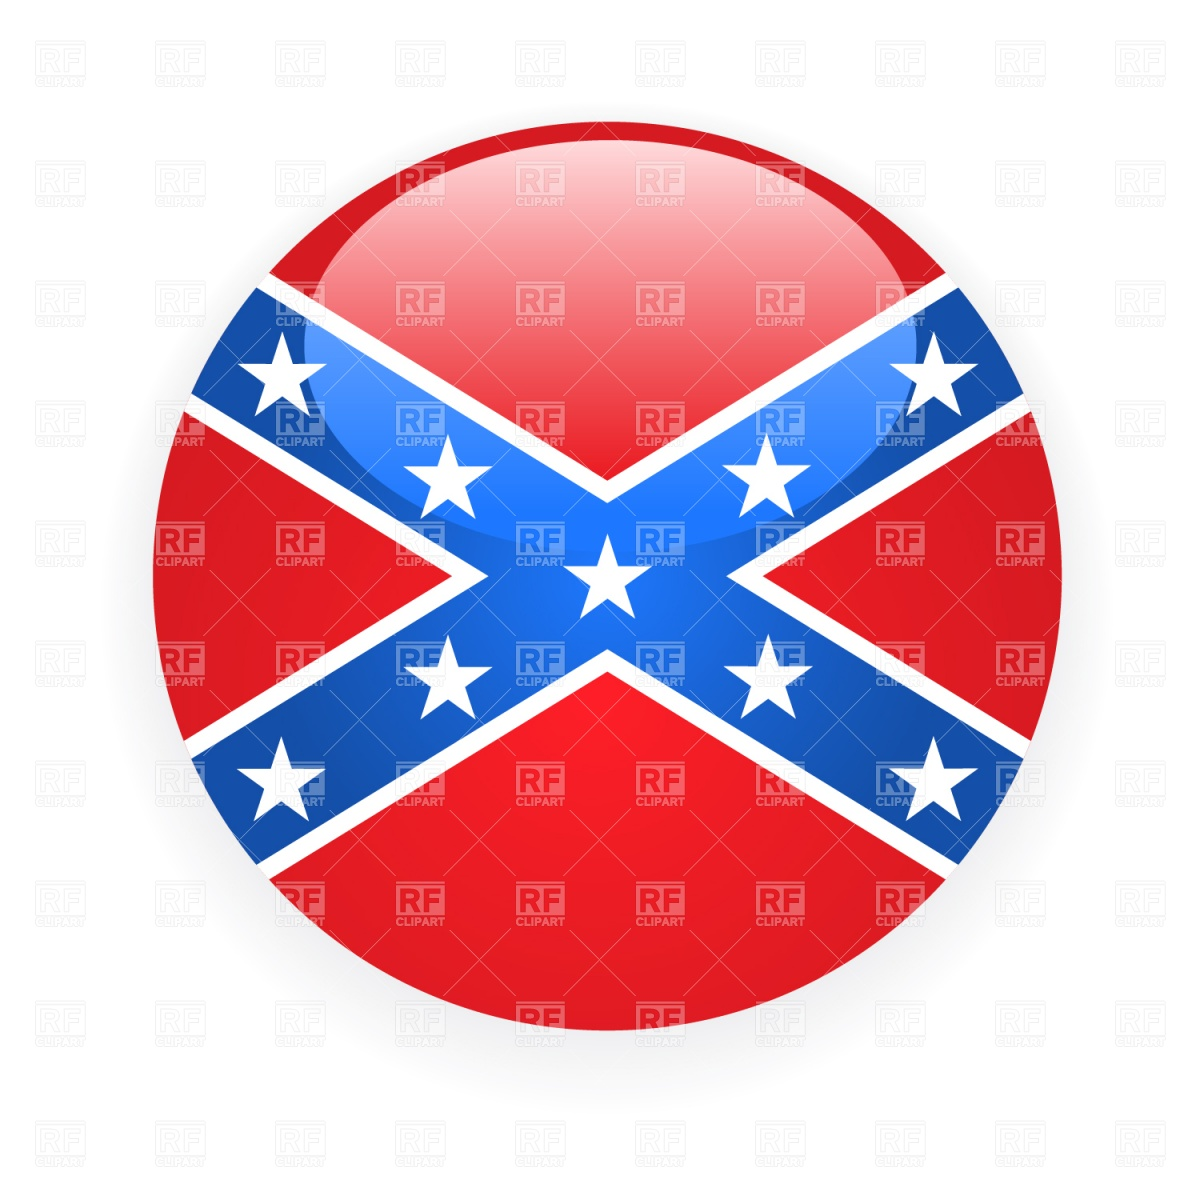 Confederate rebel flag icon 1483 Signs Symbols Maps download 1200x1200